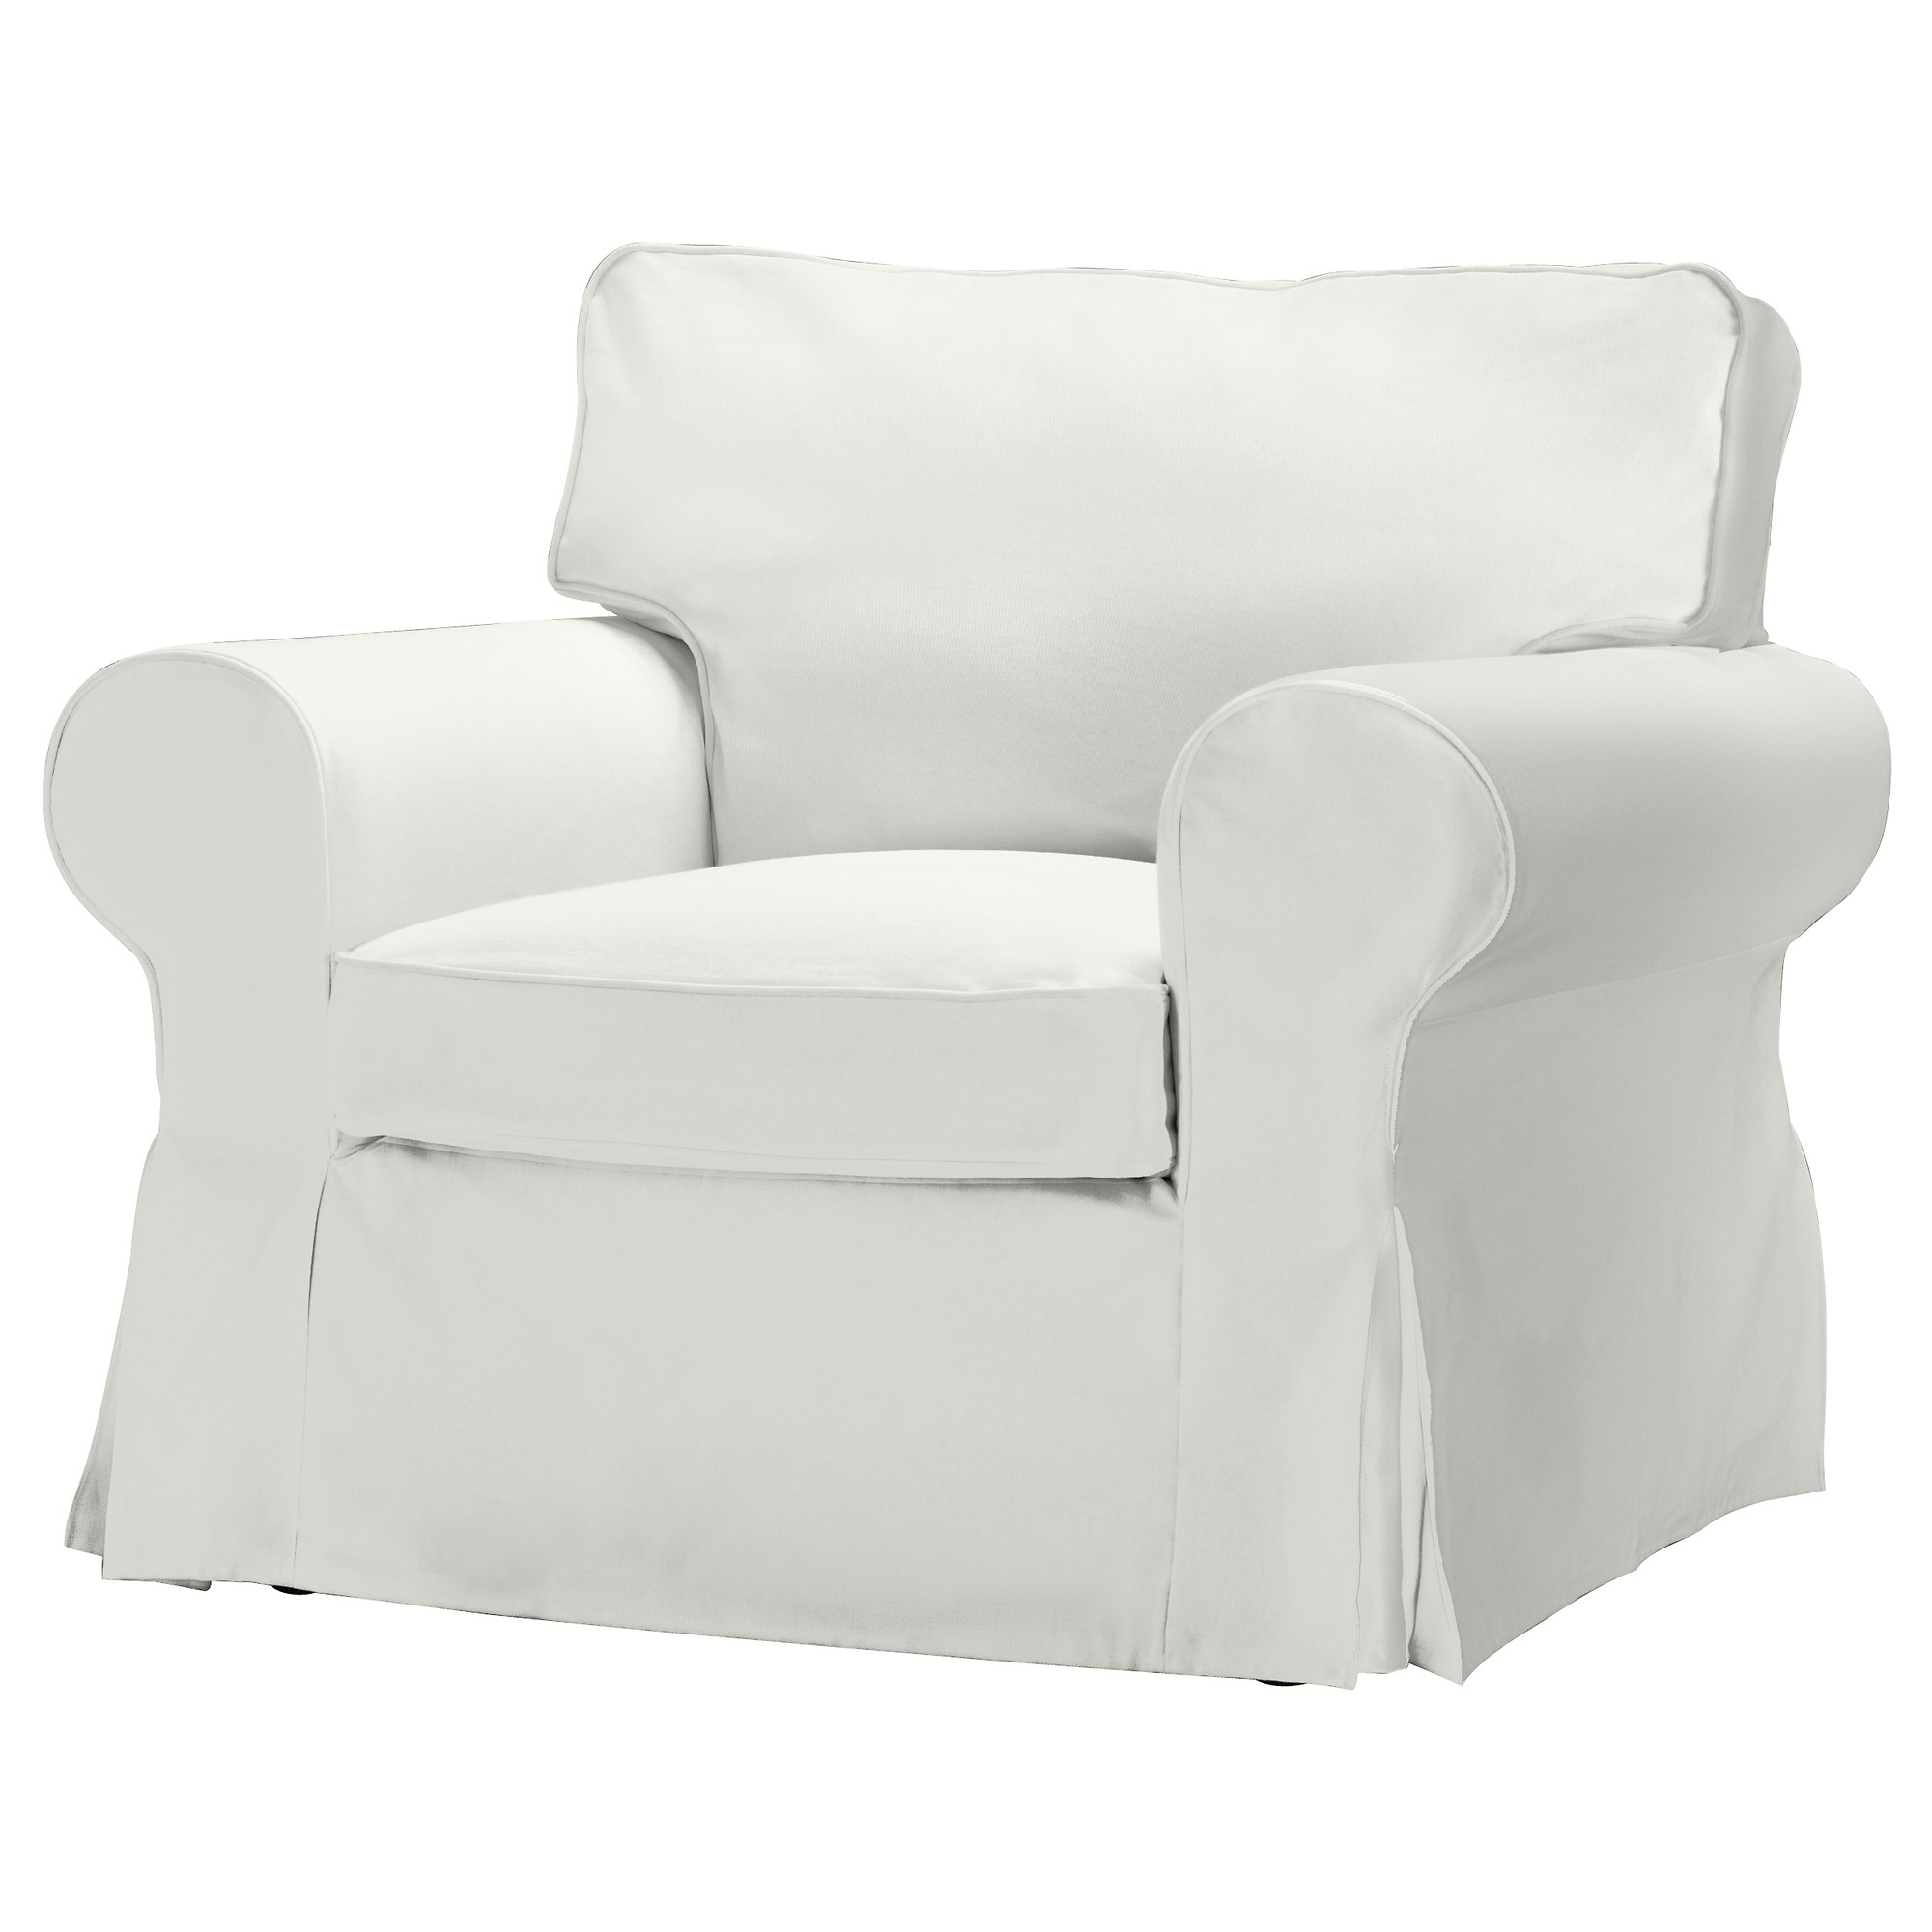 EKTORP Chair Blekinge white IKEA $249